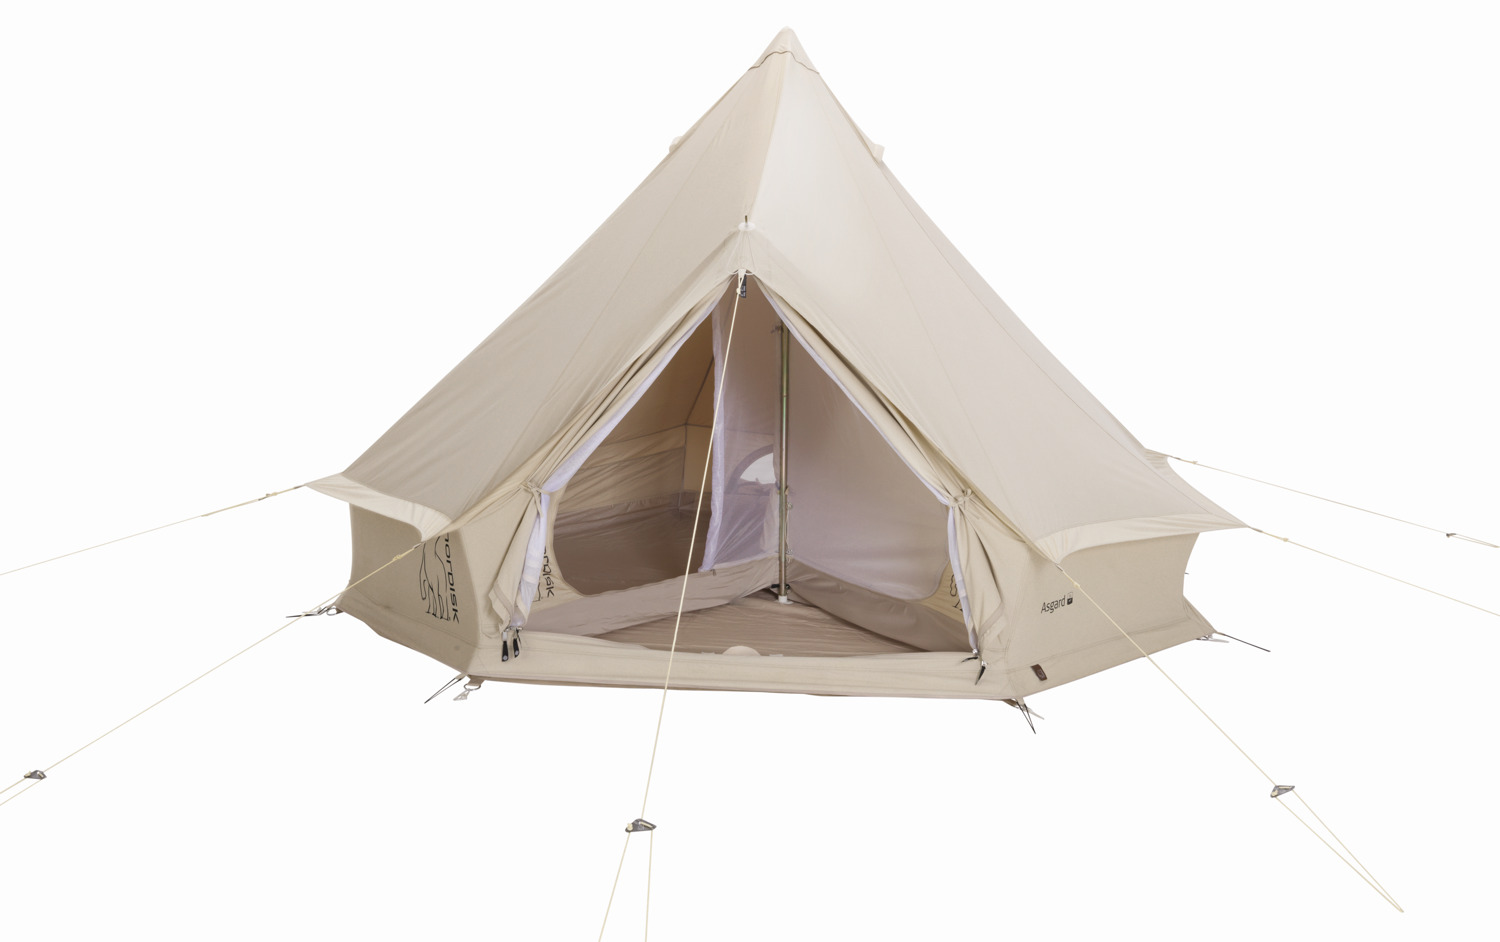 Zelt 7 In 1 : Nordisk asgard zelt natural krusche outdoor